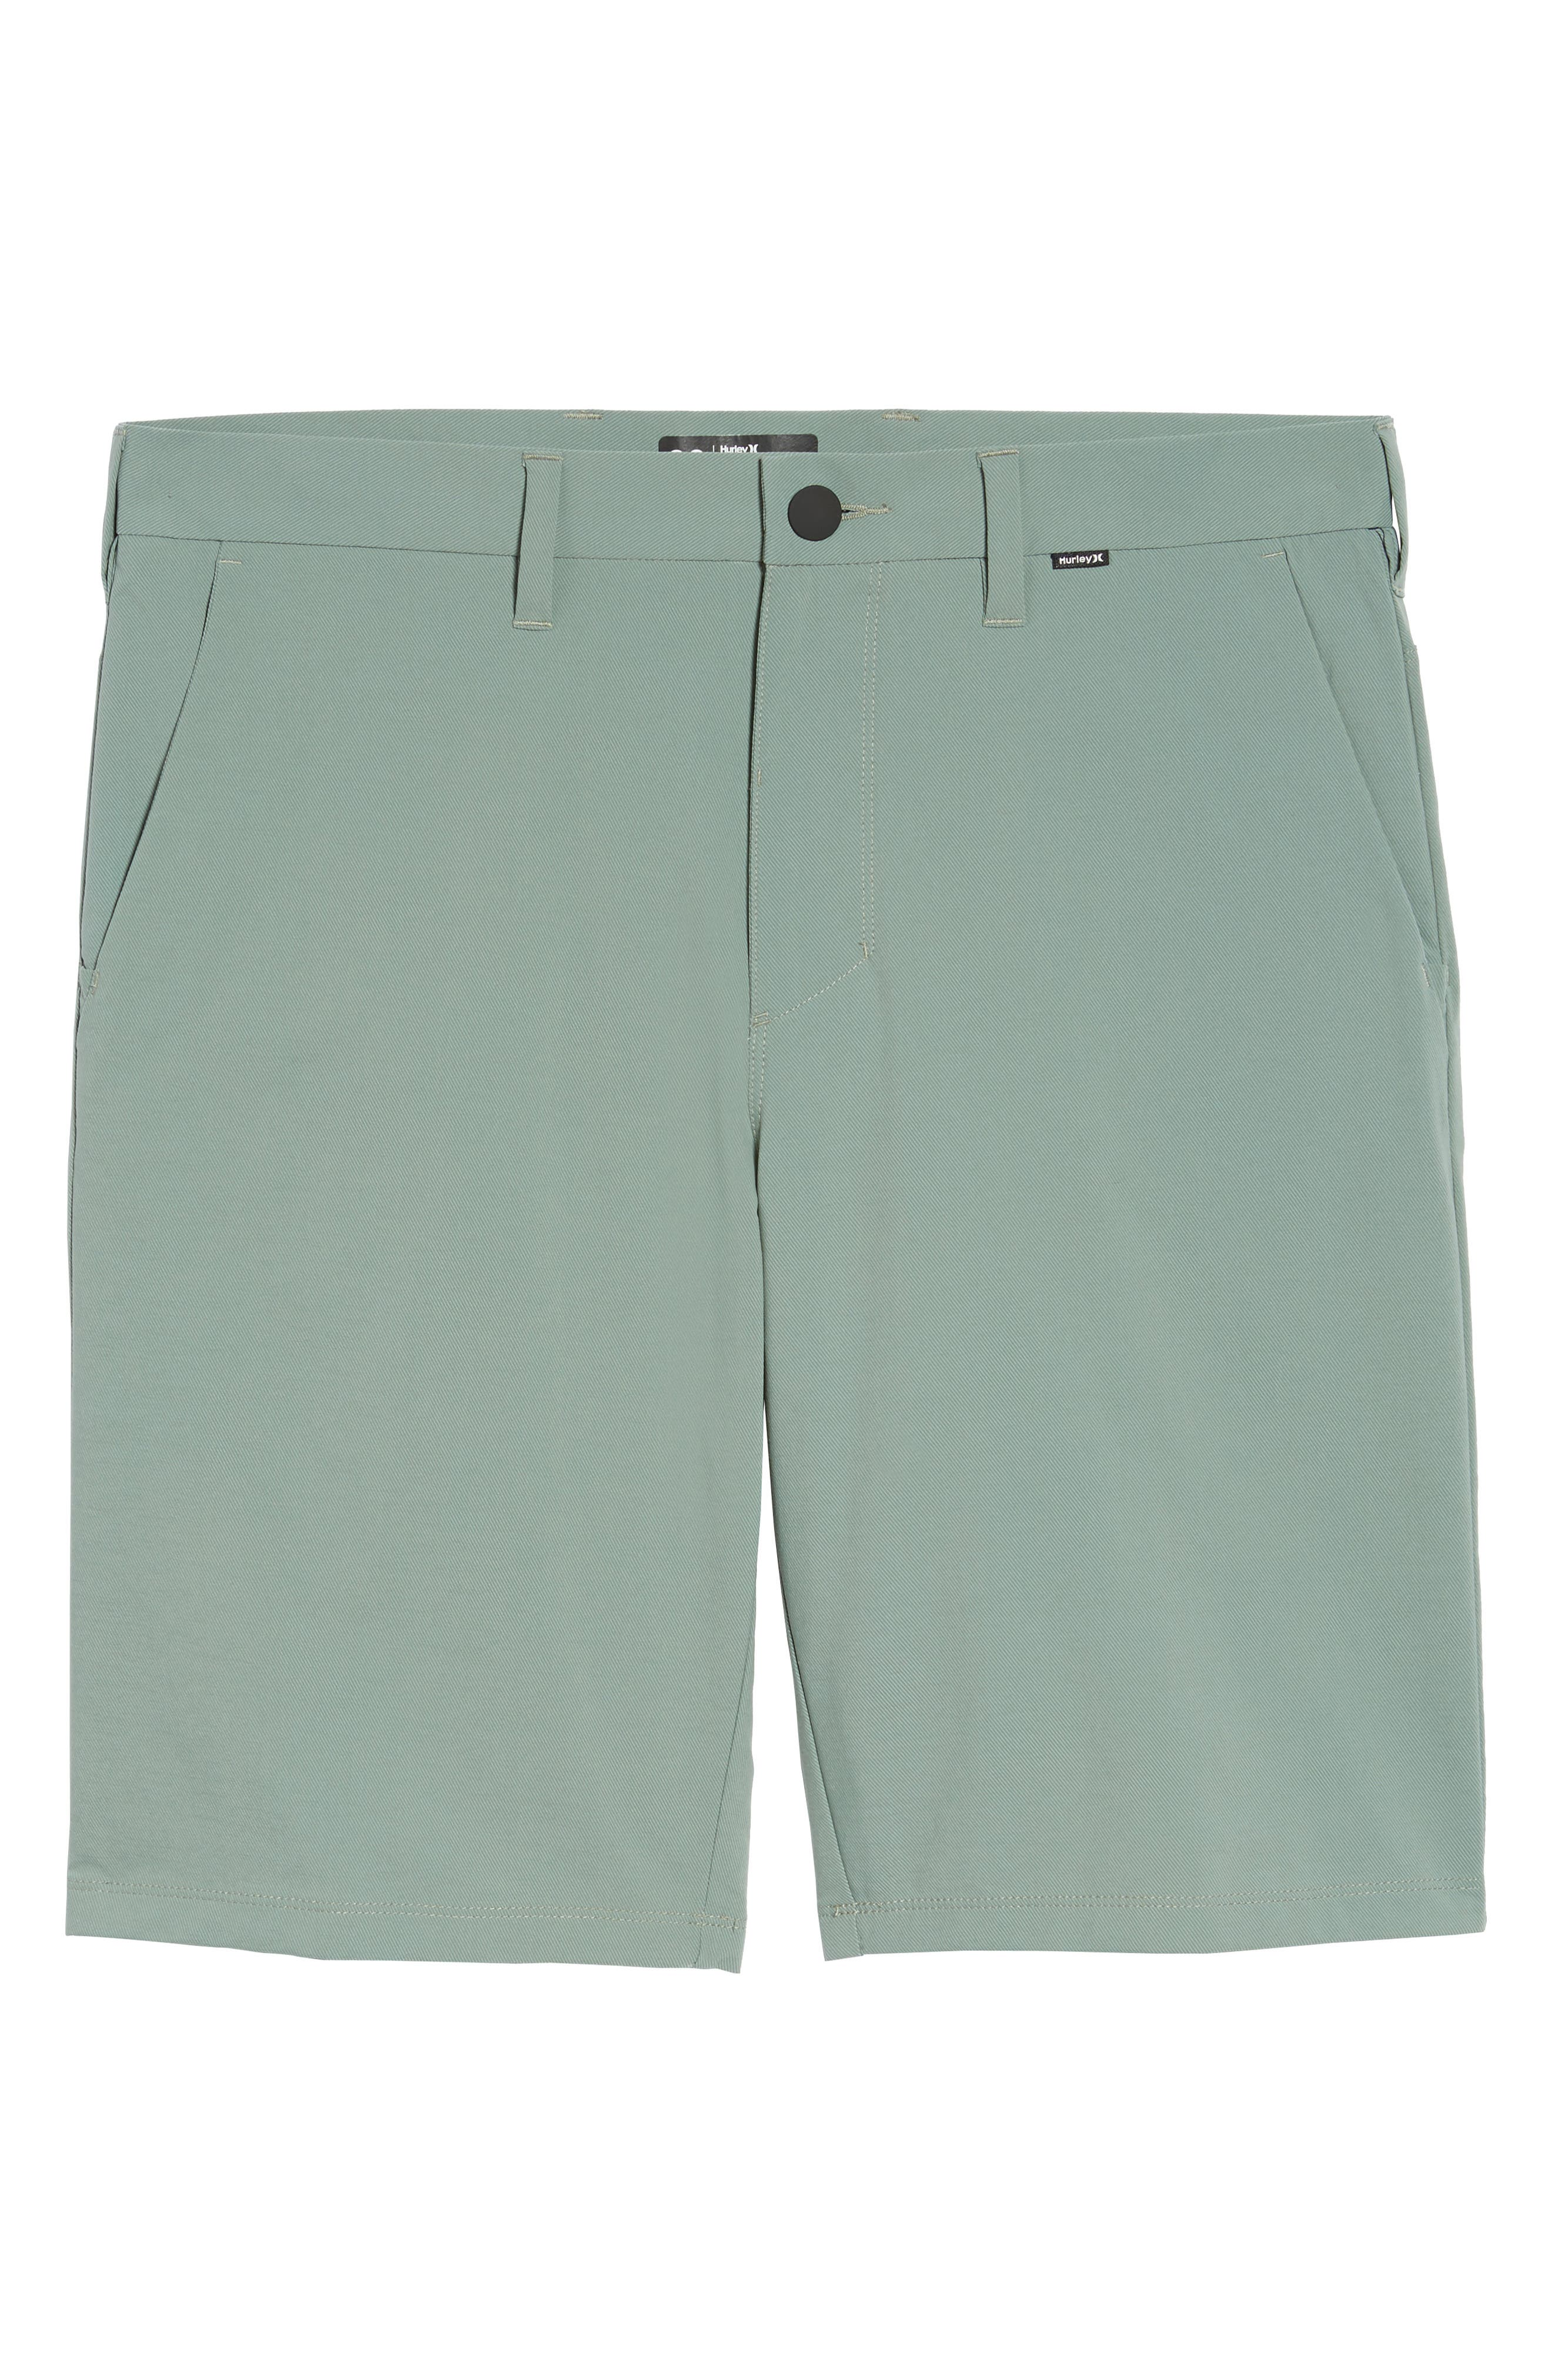 'Dry Out' Dri-FIT<sup>™</sup> Chino Shorts,                             Alternate thumbnail 216, color,